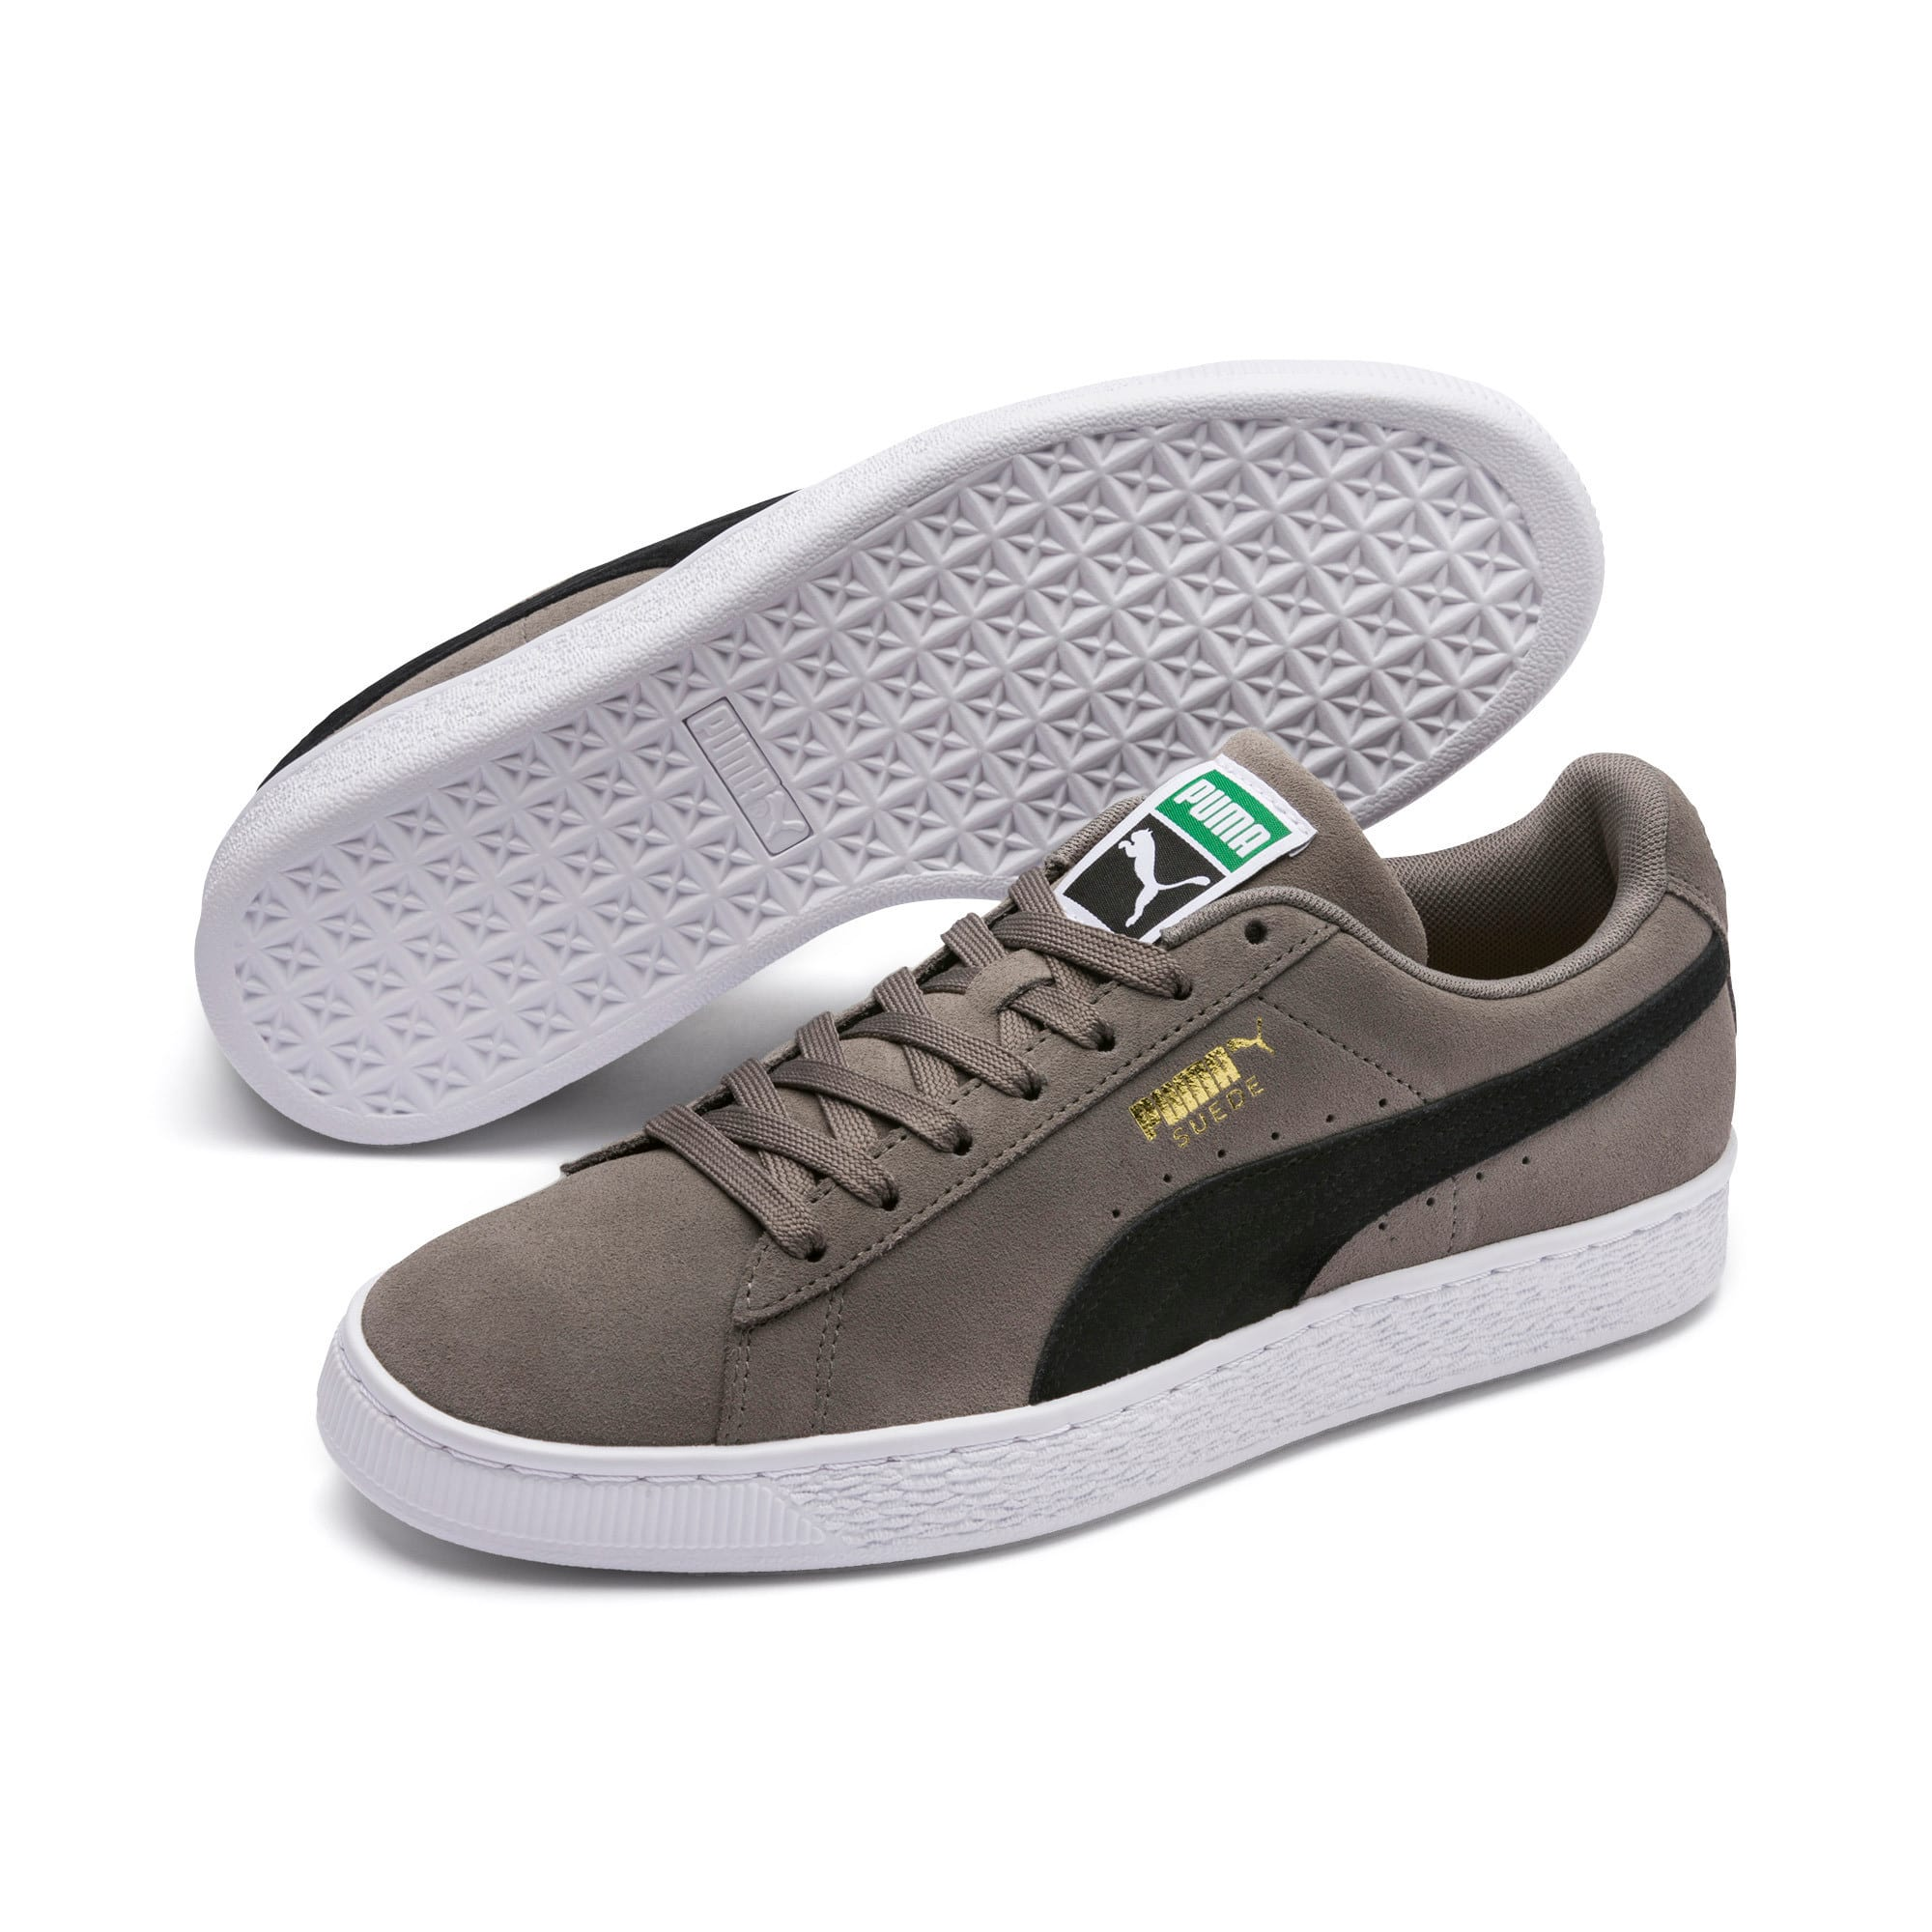 Thumbnail 2 of Suede Classic Trainers, Charcoal Gray-Puma Black, medium